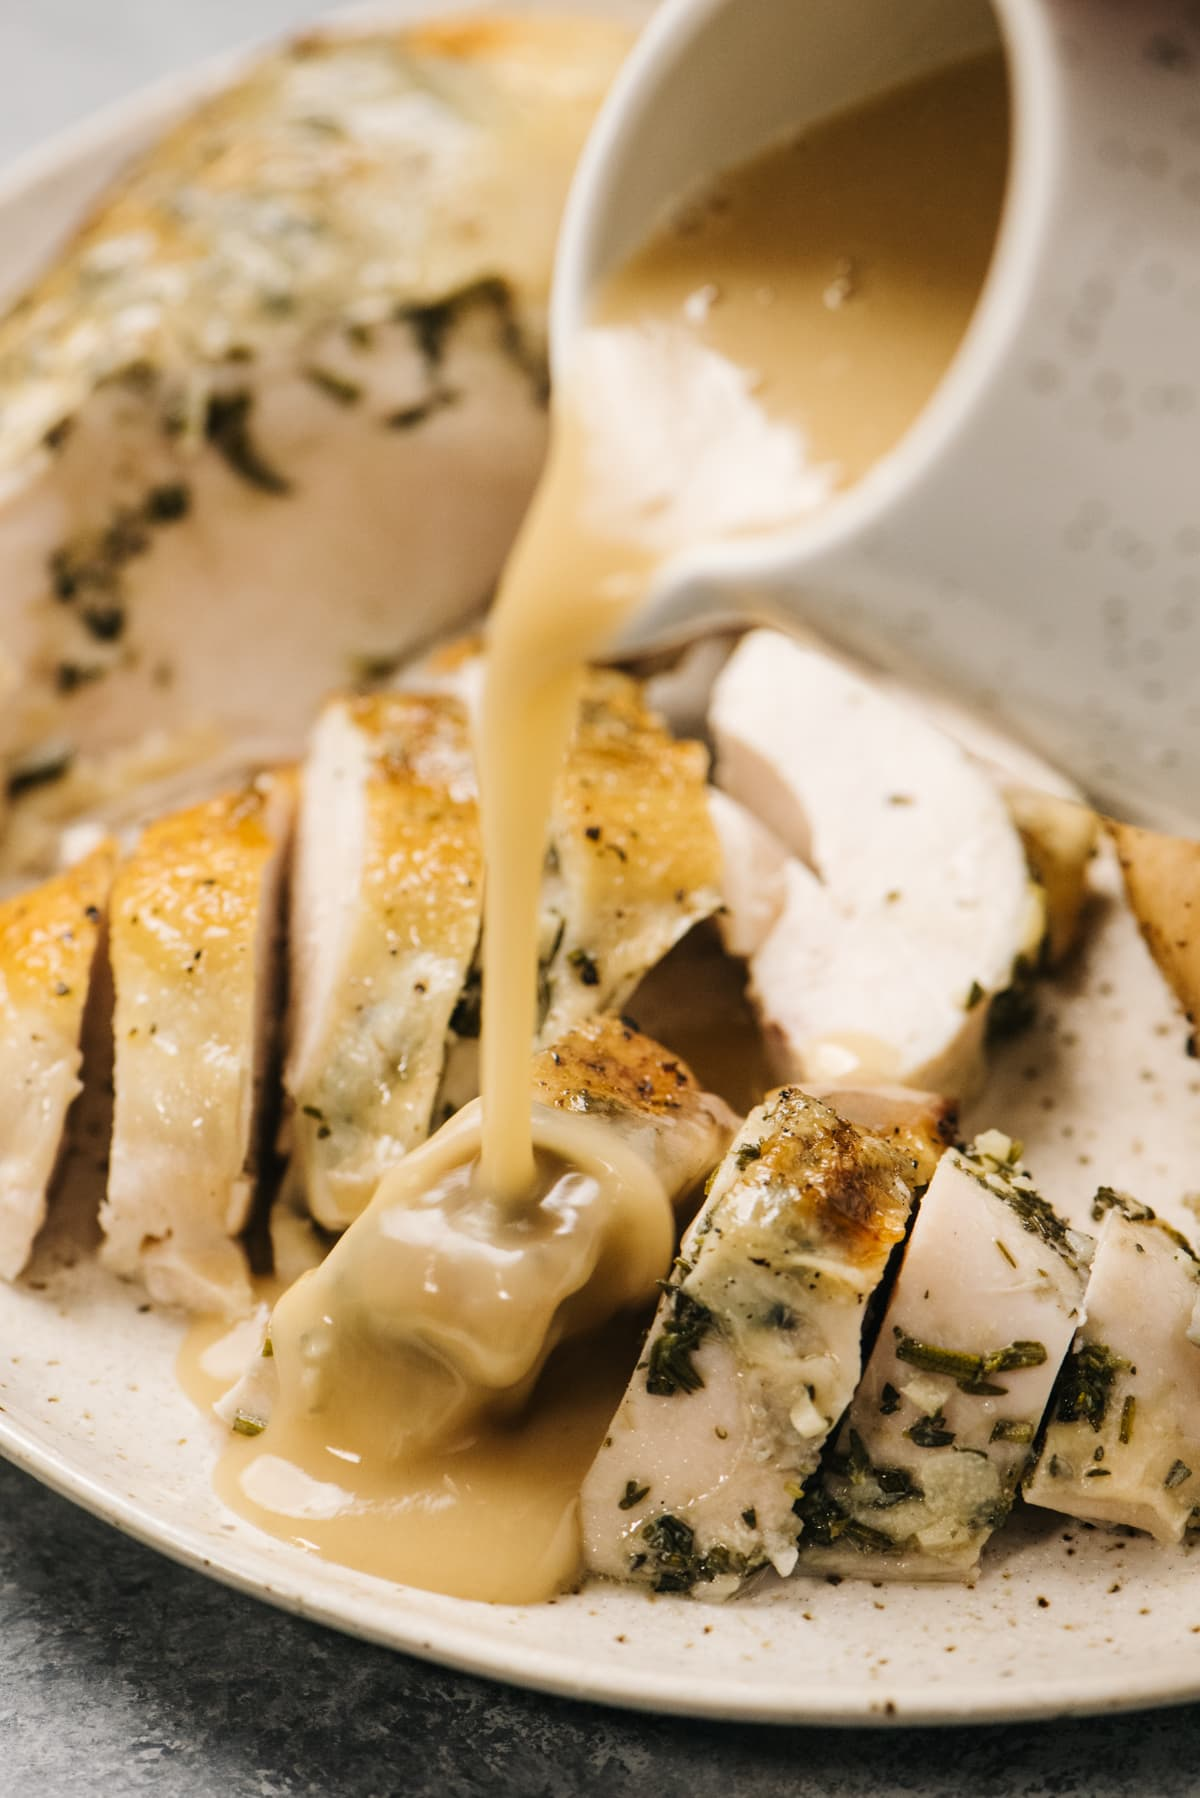 Pouring gravy over sliced roasted chicken on a tan speckled plate.